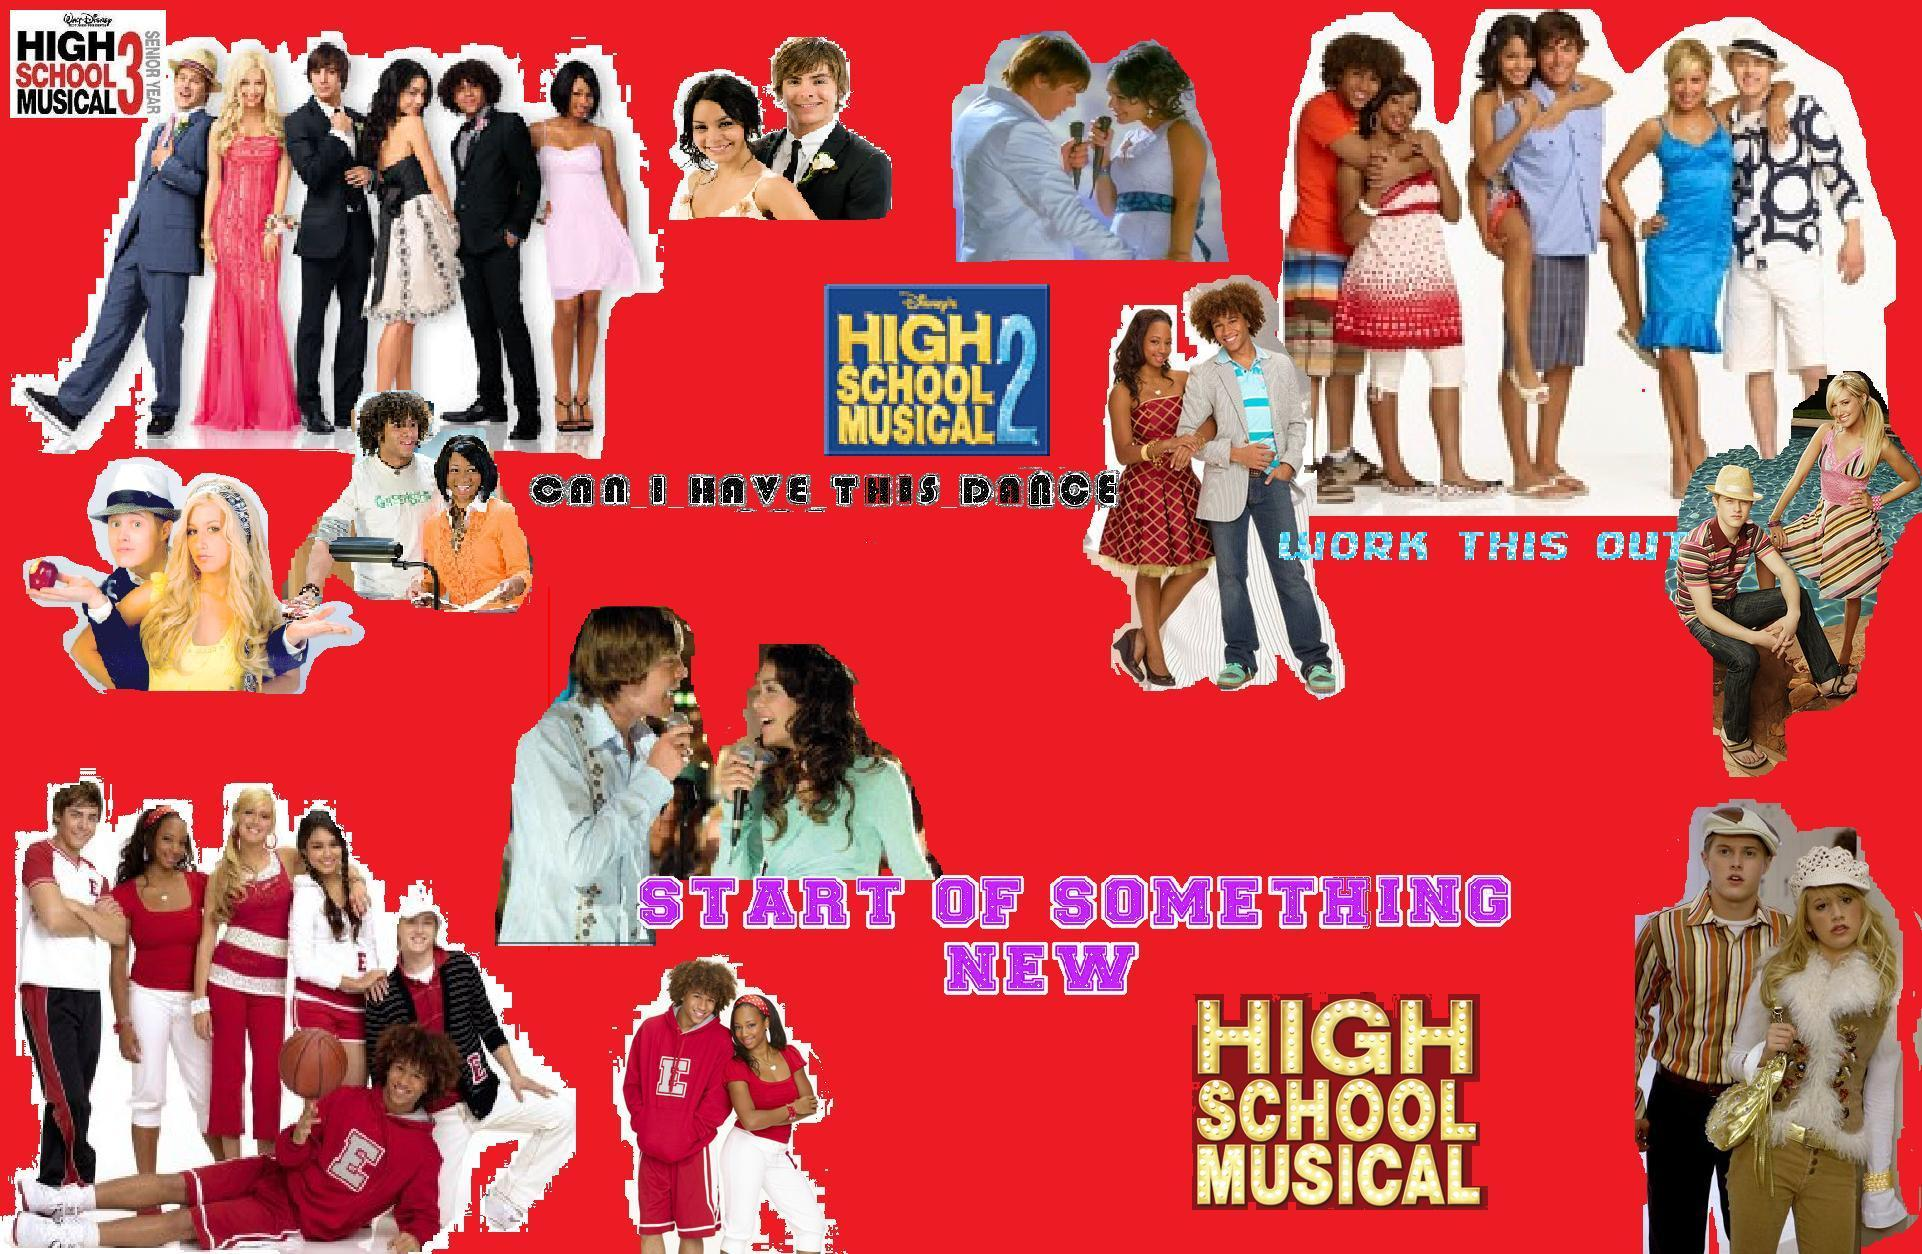 HSM wallpaper   High School Musical 1 2 and 3 Photo 10986791 1922x1254